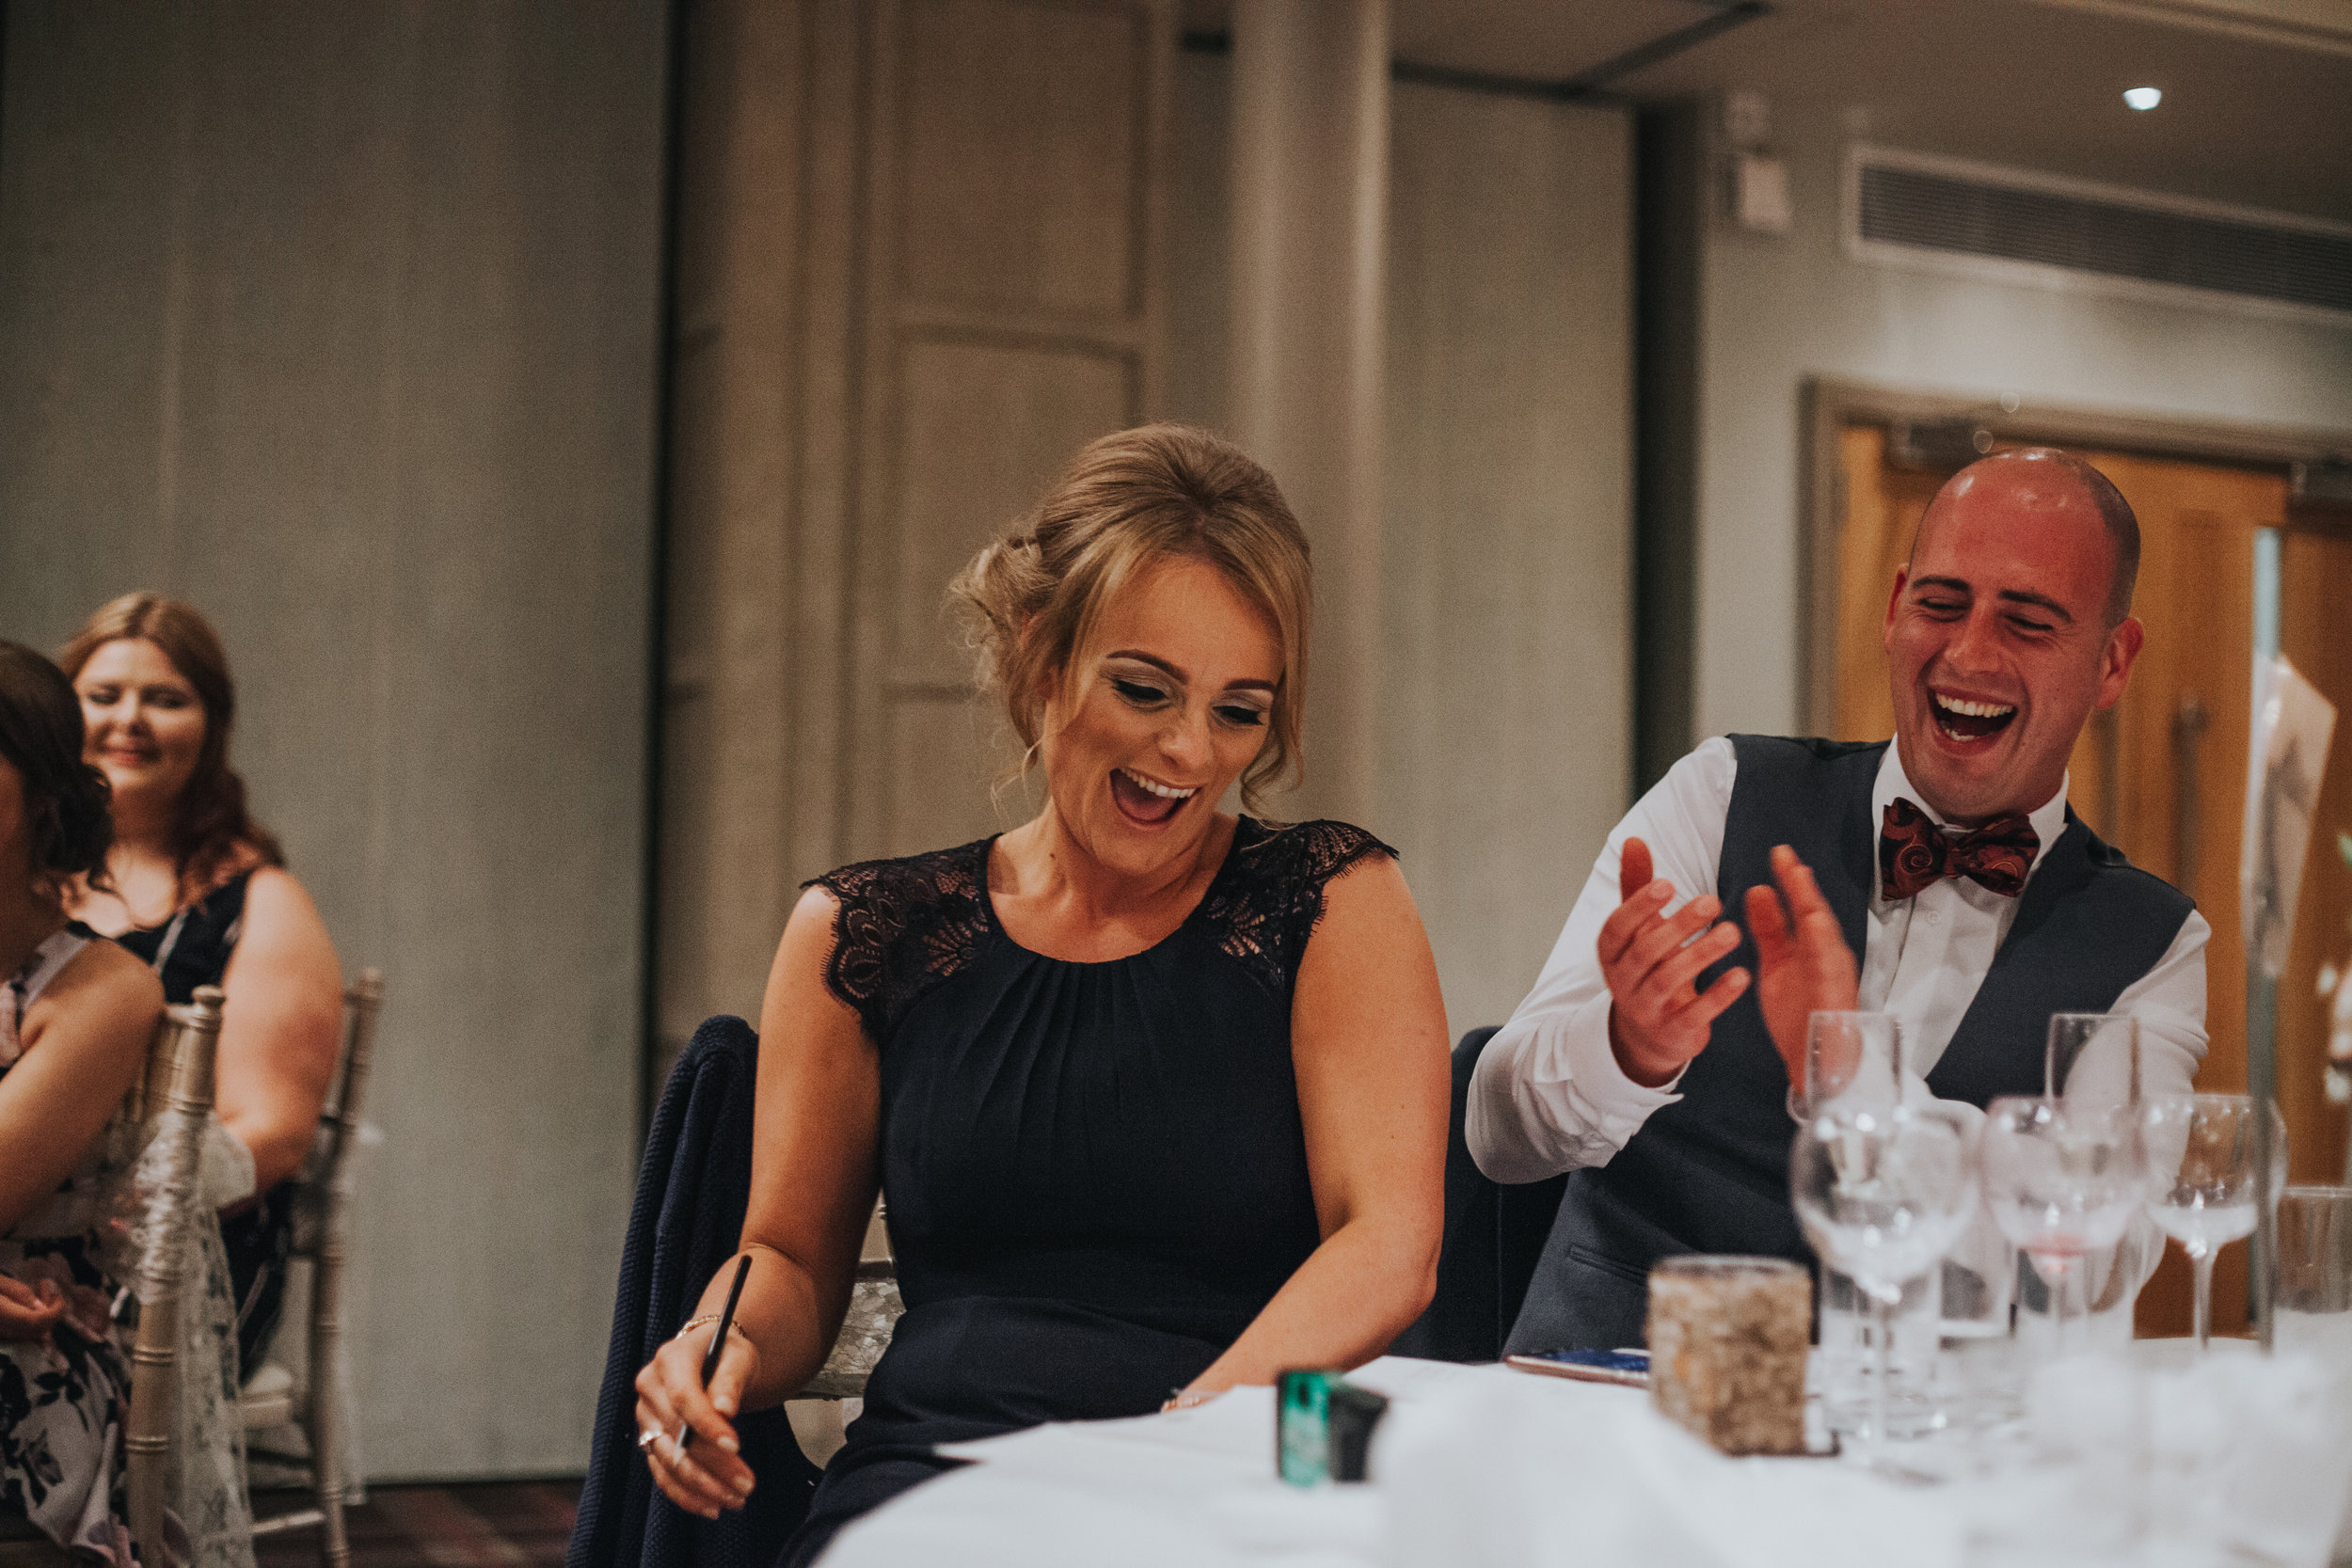 Couple laughing at speeches.